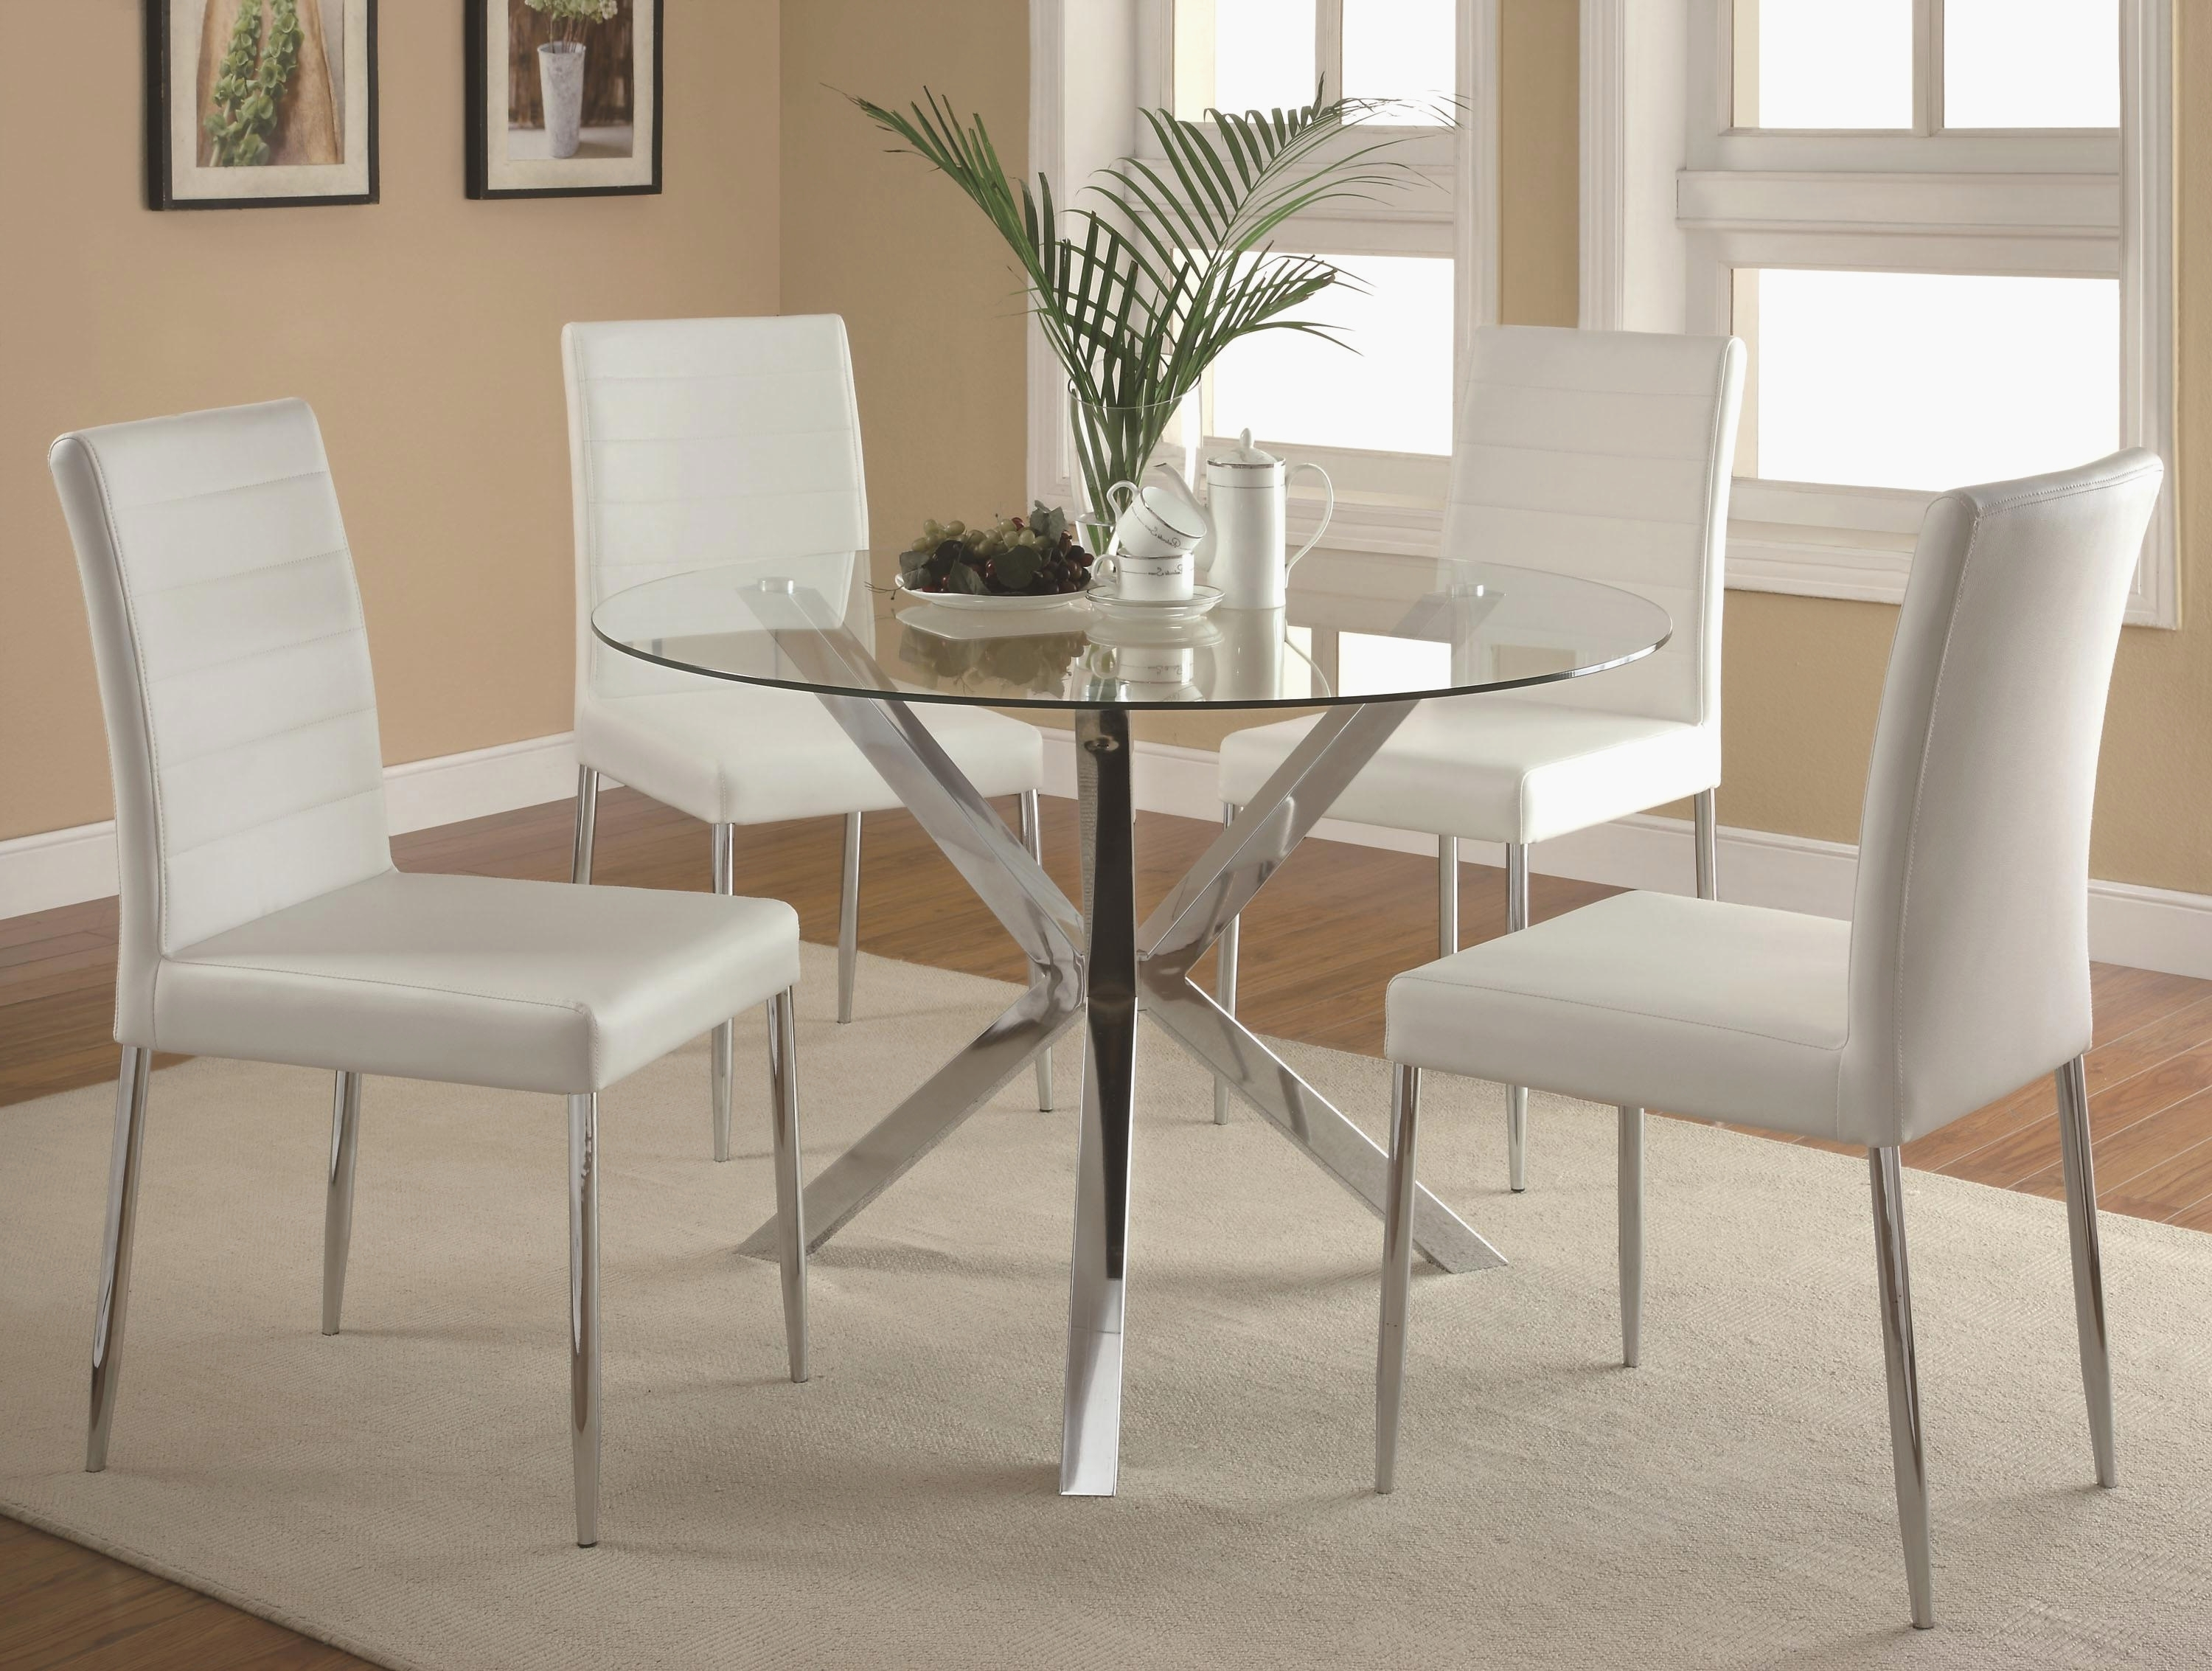 Glass And Chrome Dining Table Diy Dining Table Chairs Hd Cute Home Regarding Trendy Chrome Dining Room Sets (View 15 of 25)